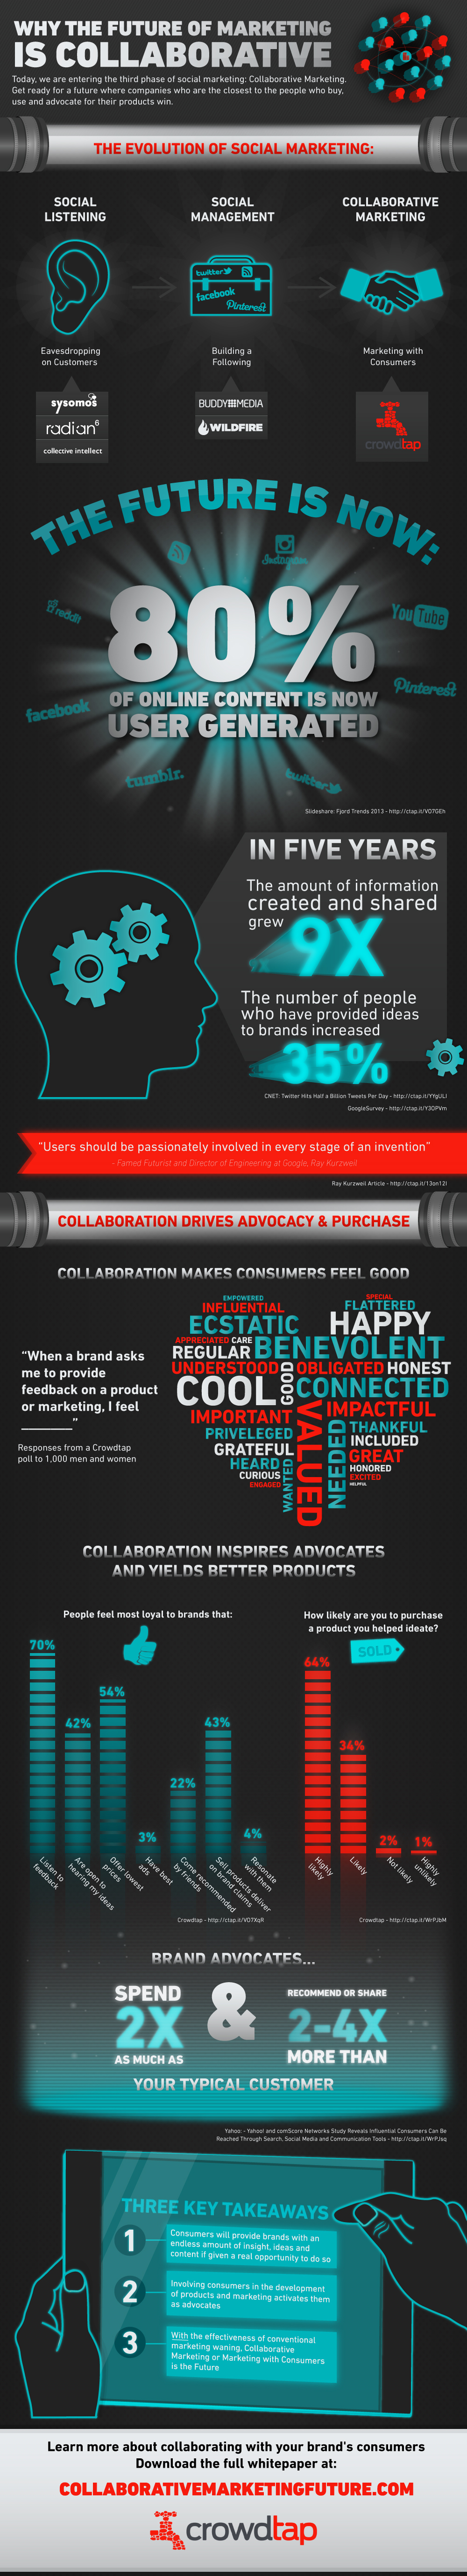 Marketing Collaboration and Trends